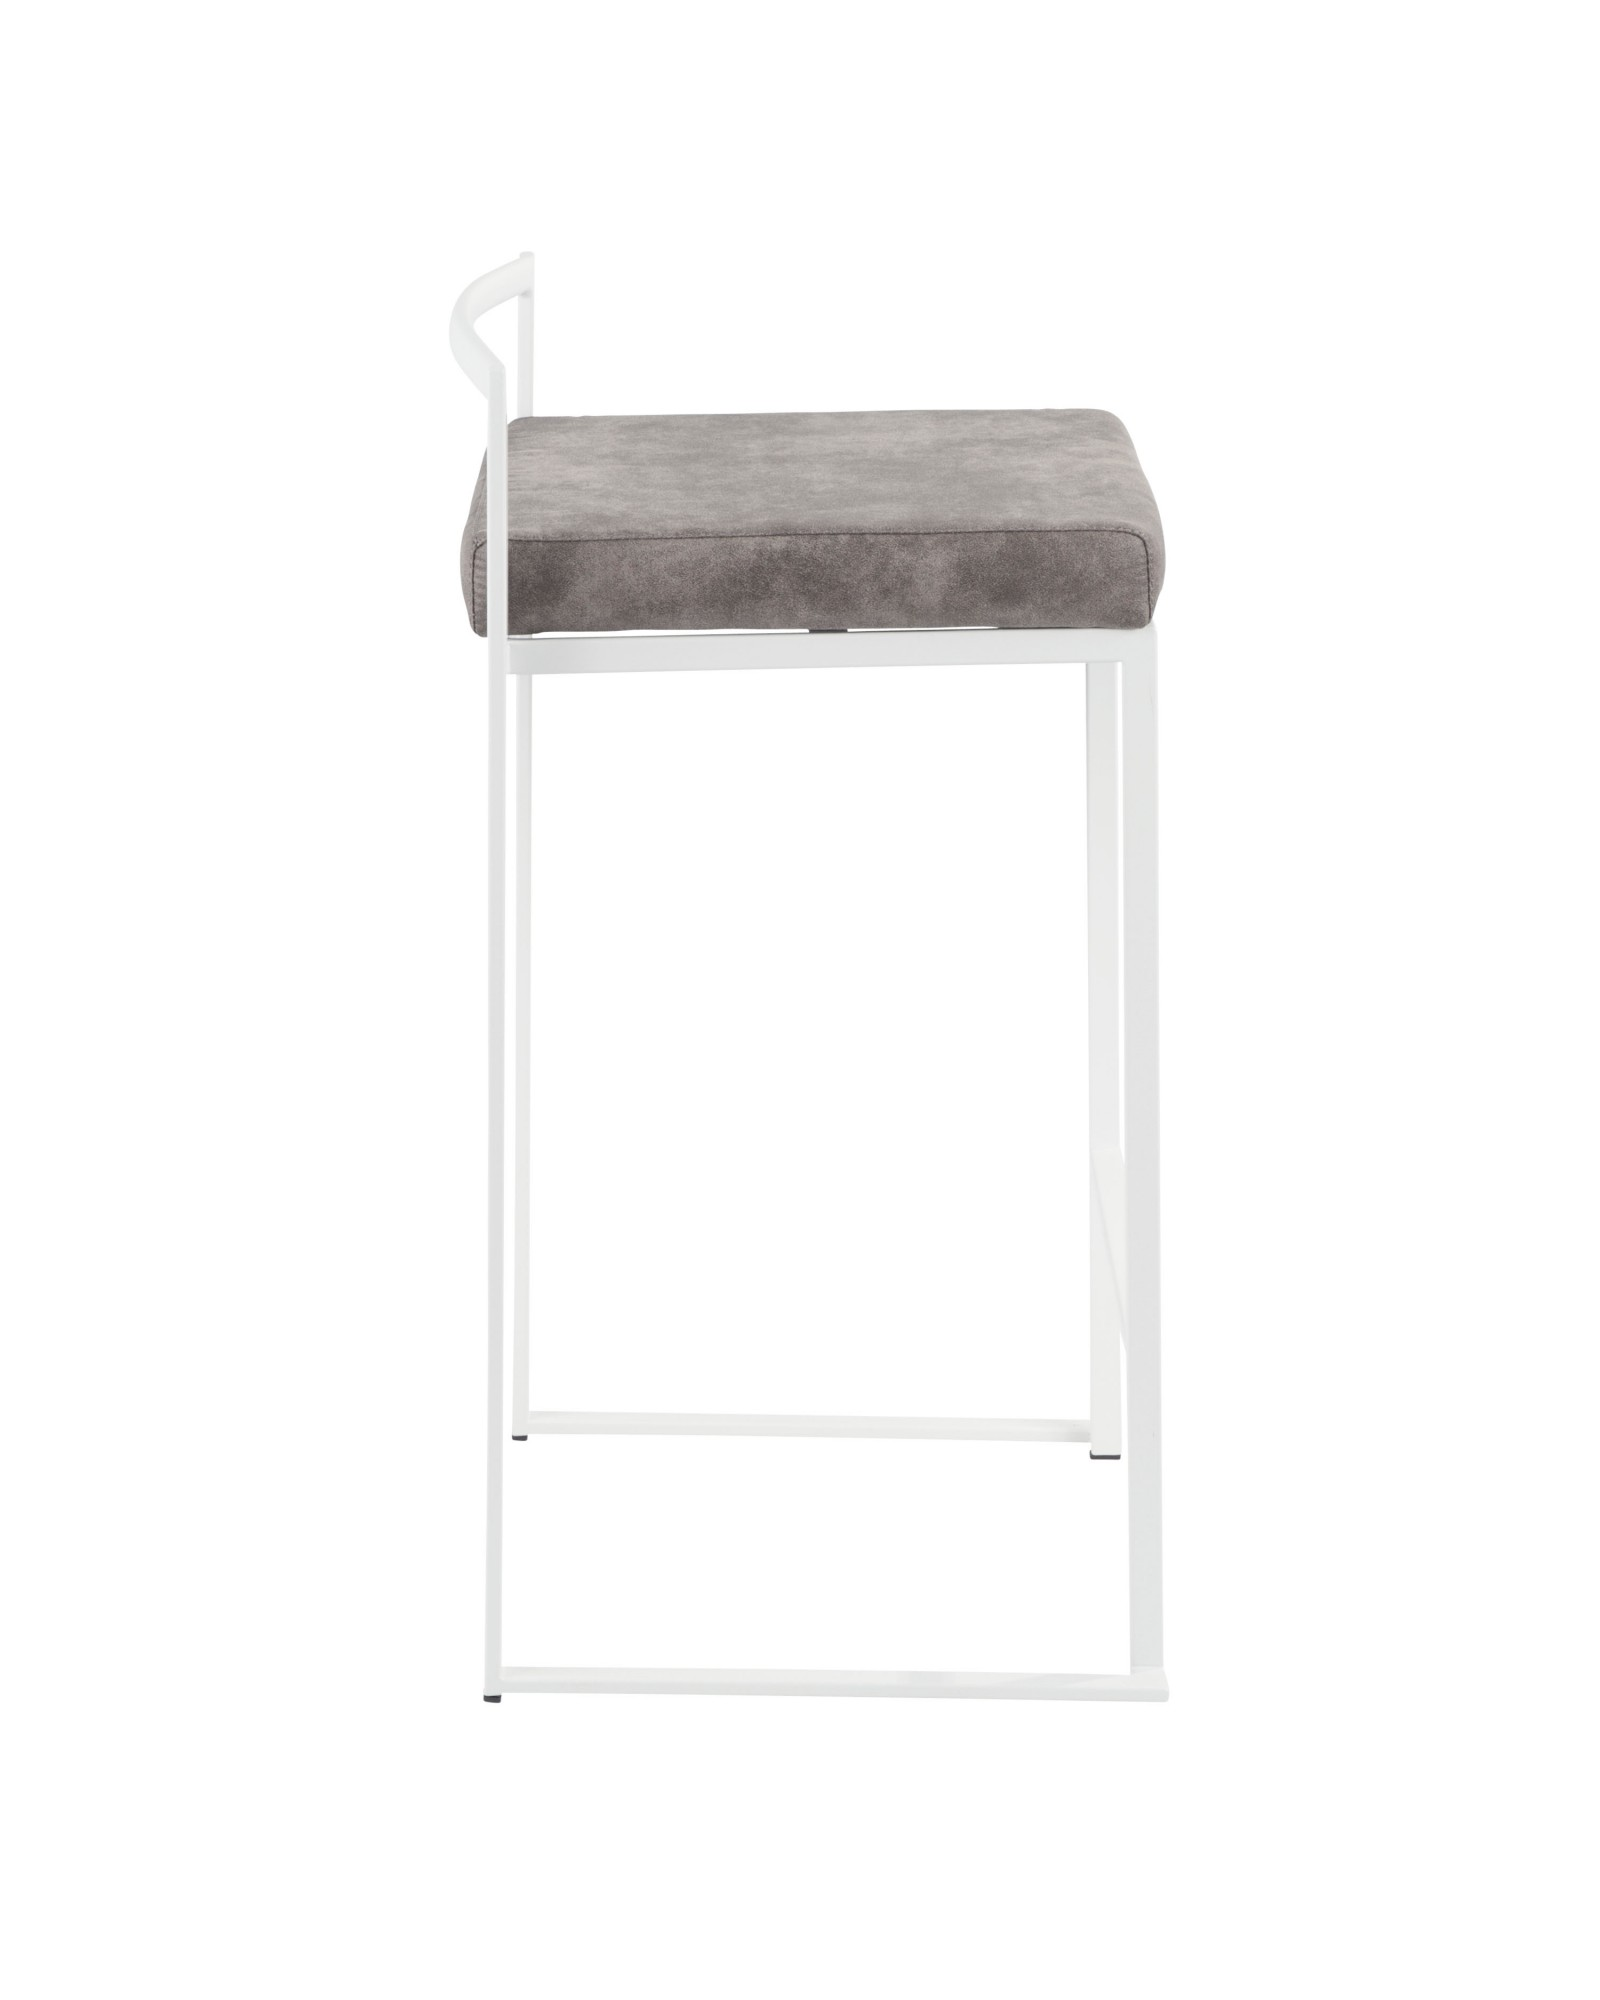 Fuji Contemporary Stackable Counter Stool in White with Stone Cowboy Fabric Cushion - Set of 2